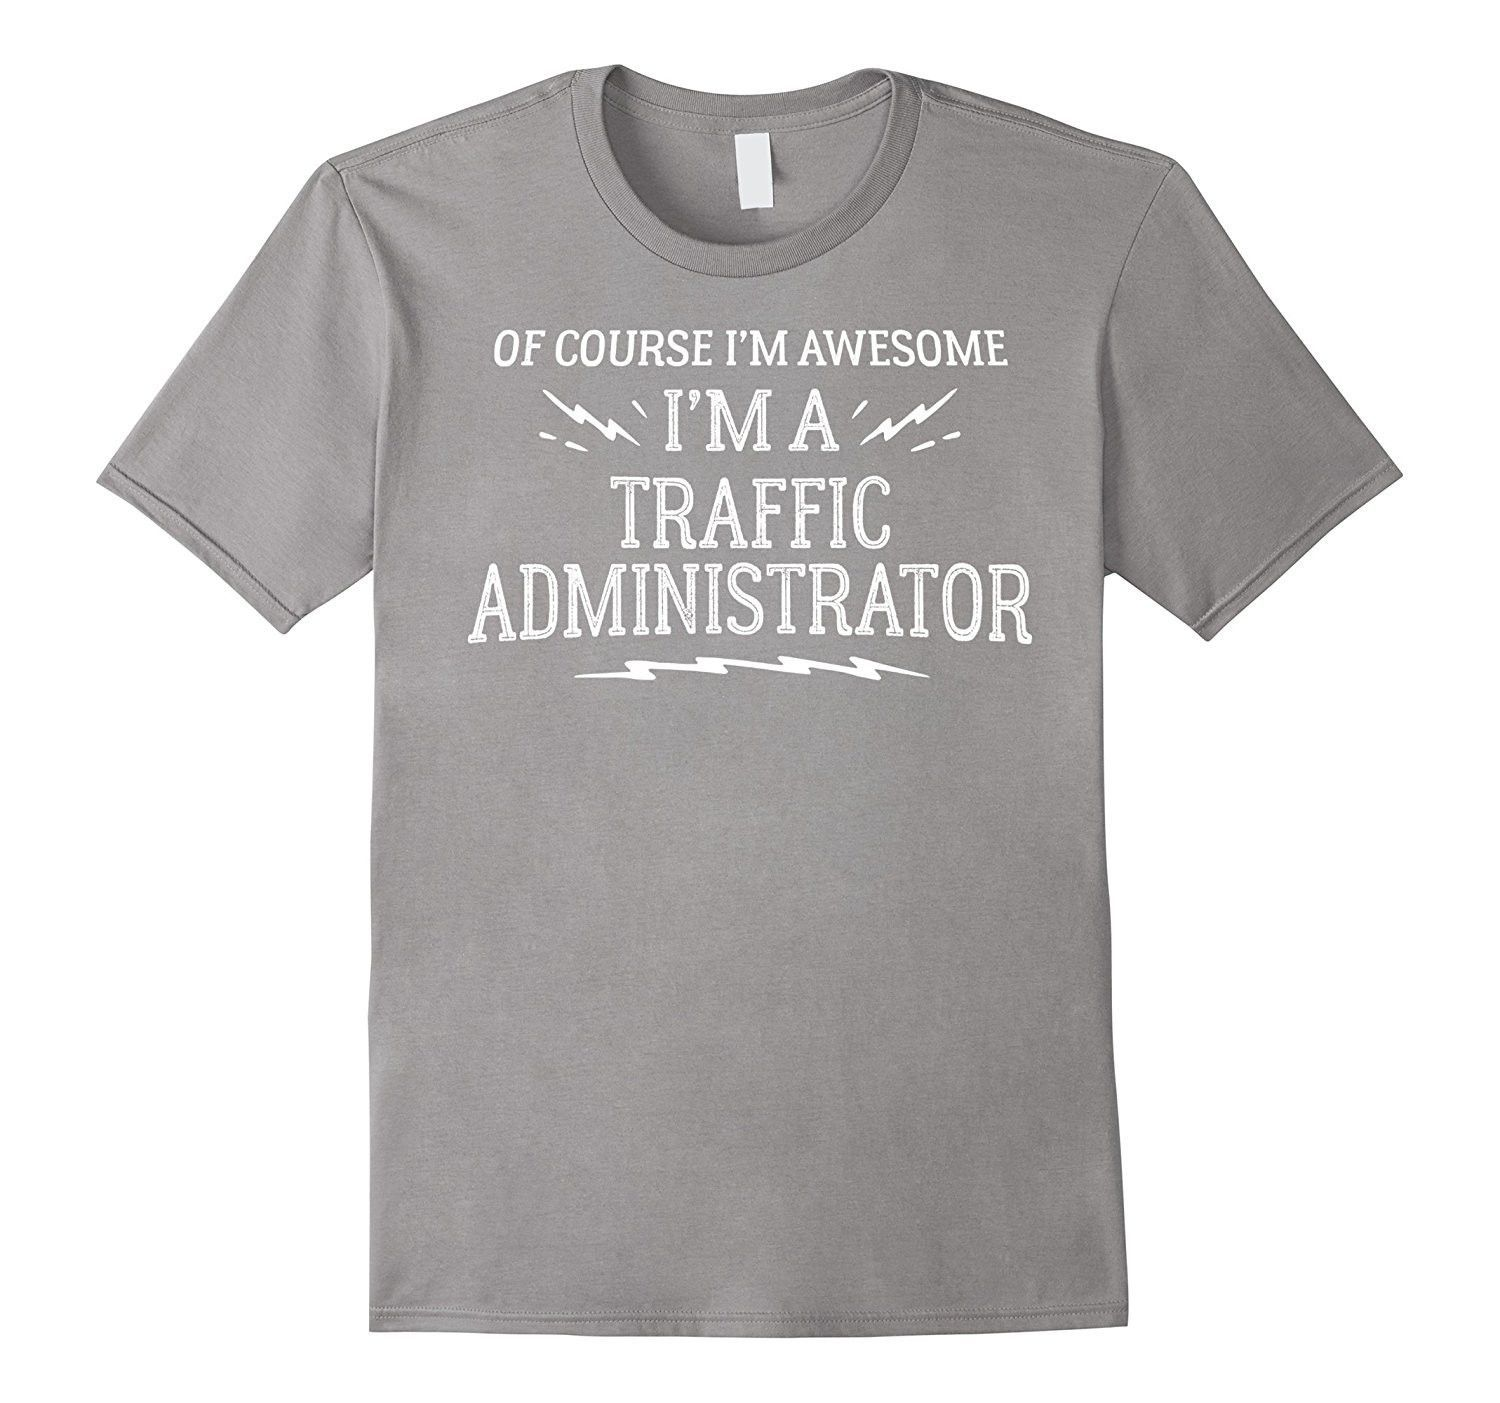 Traffic Administrator T-Shirt Gift - Of Course I'm Awesome